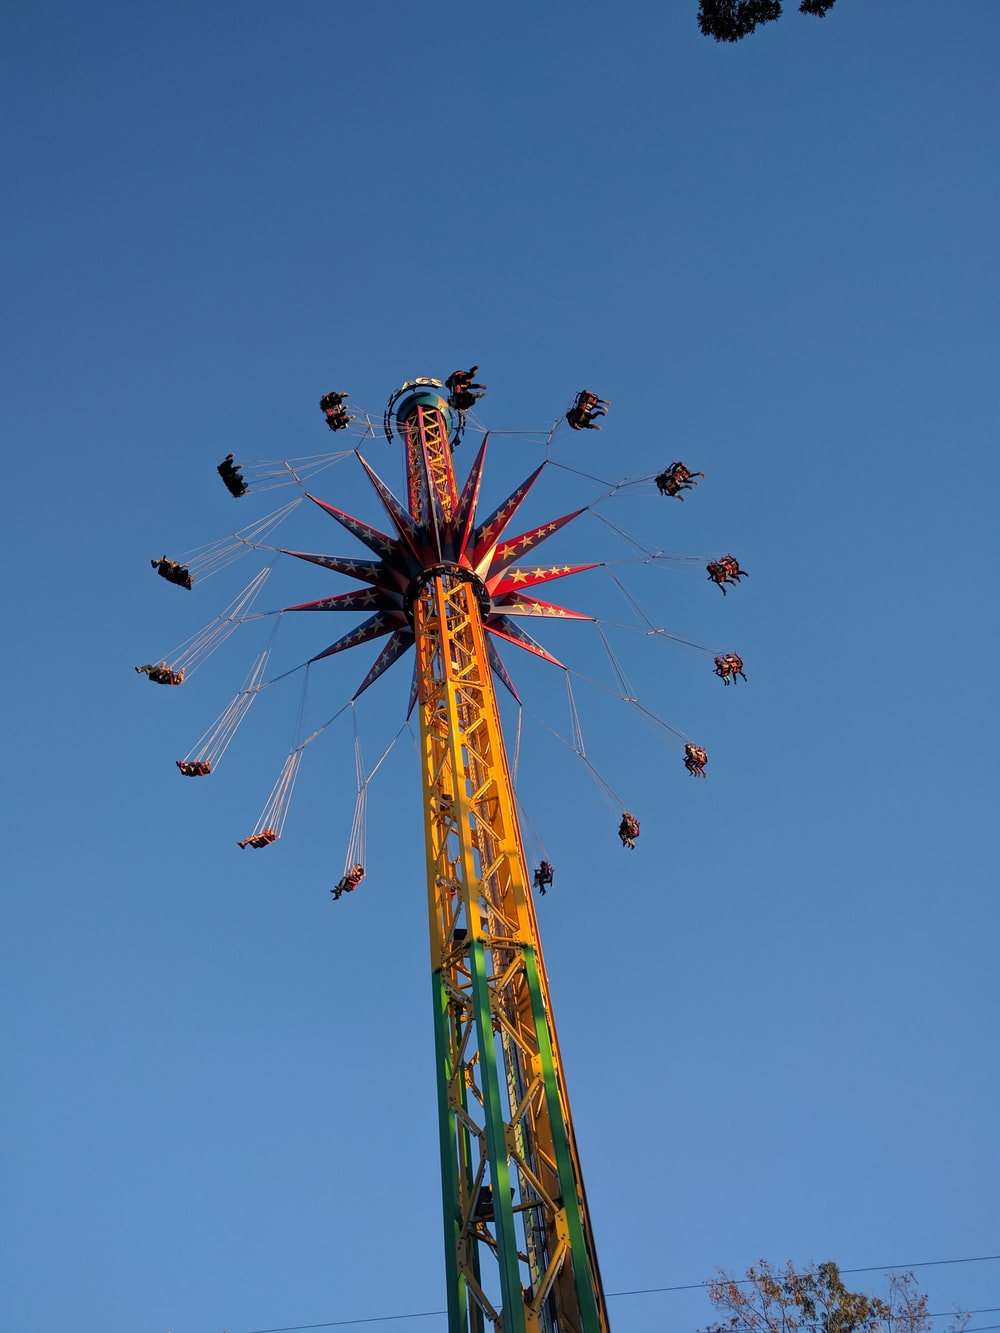 people riding on green and red roller coaster during daytime